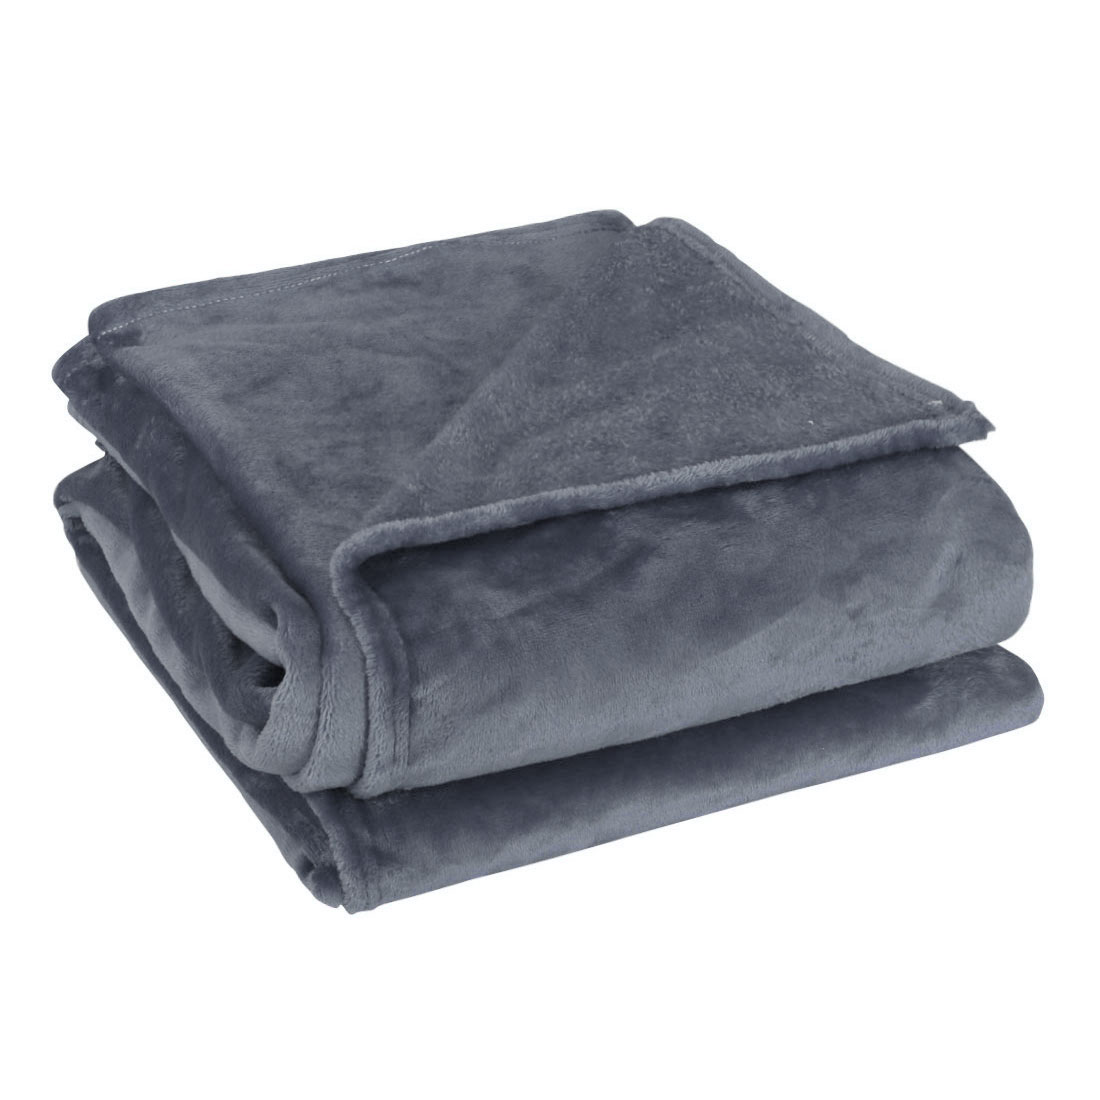 Bedding Couch Polyester Warm Soft Throws Blanket Dark Gray Twin Size 150 x 200cm